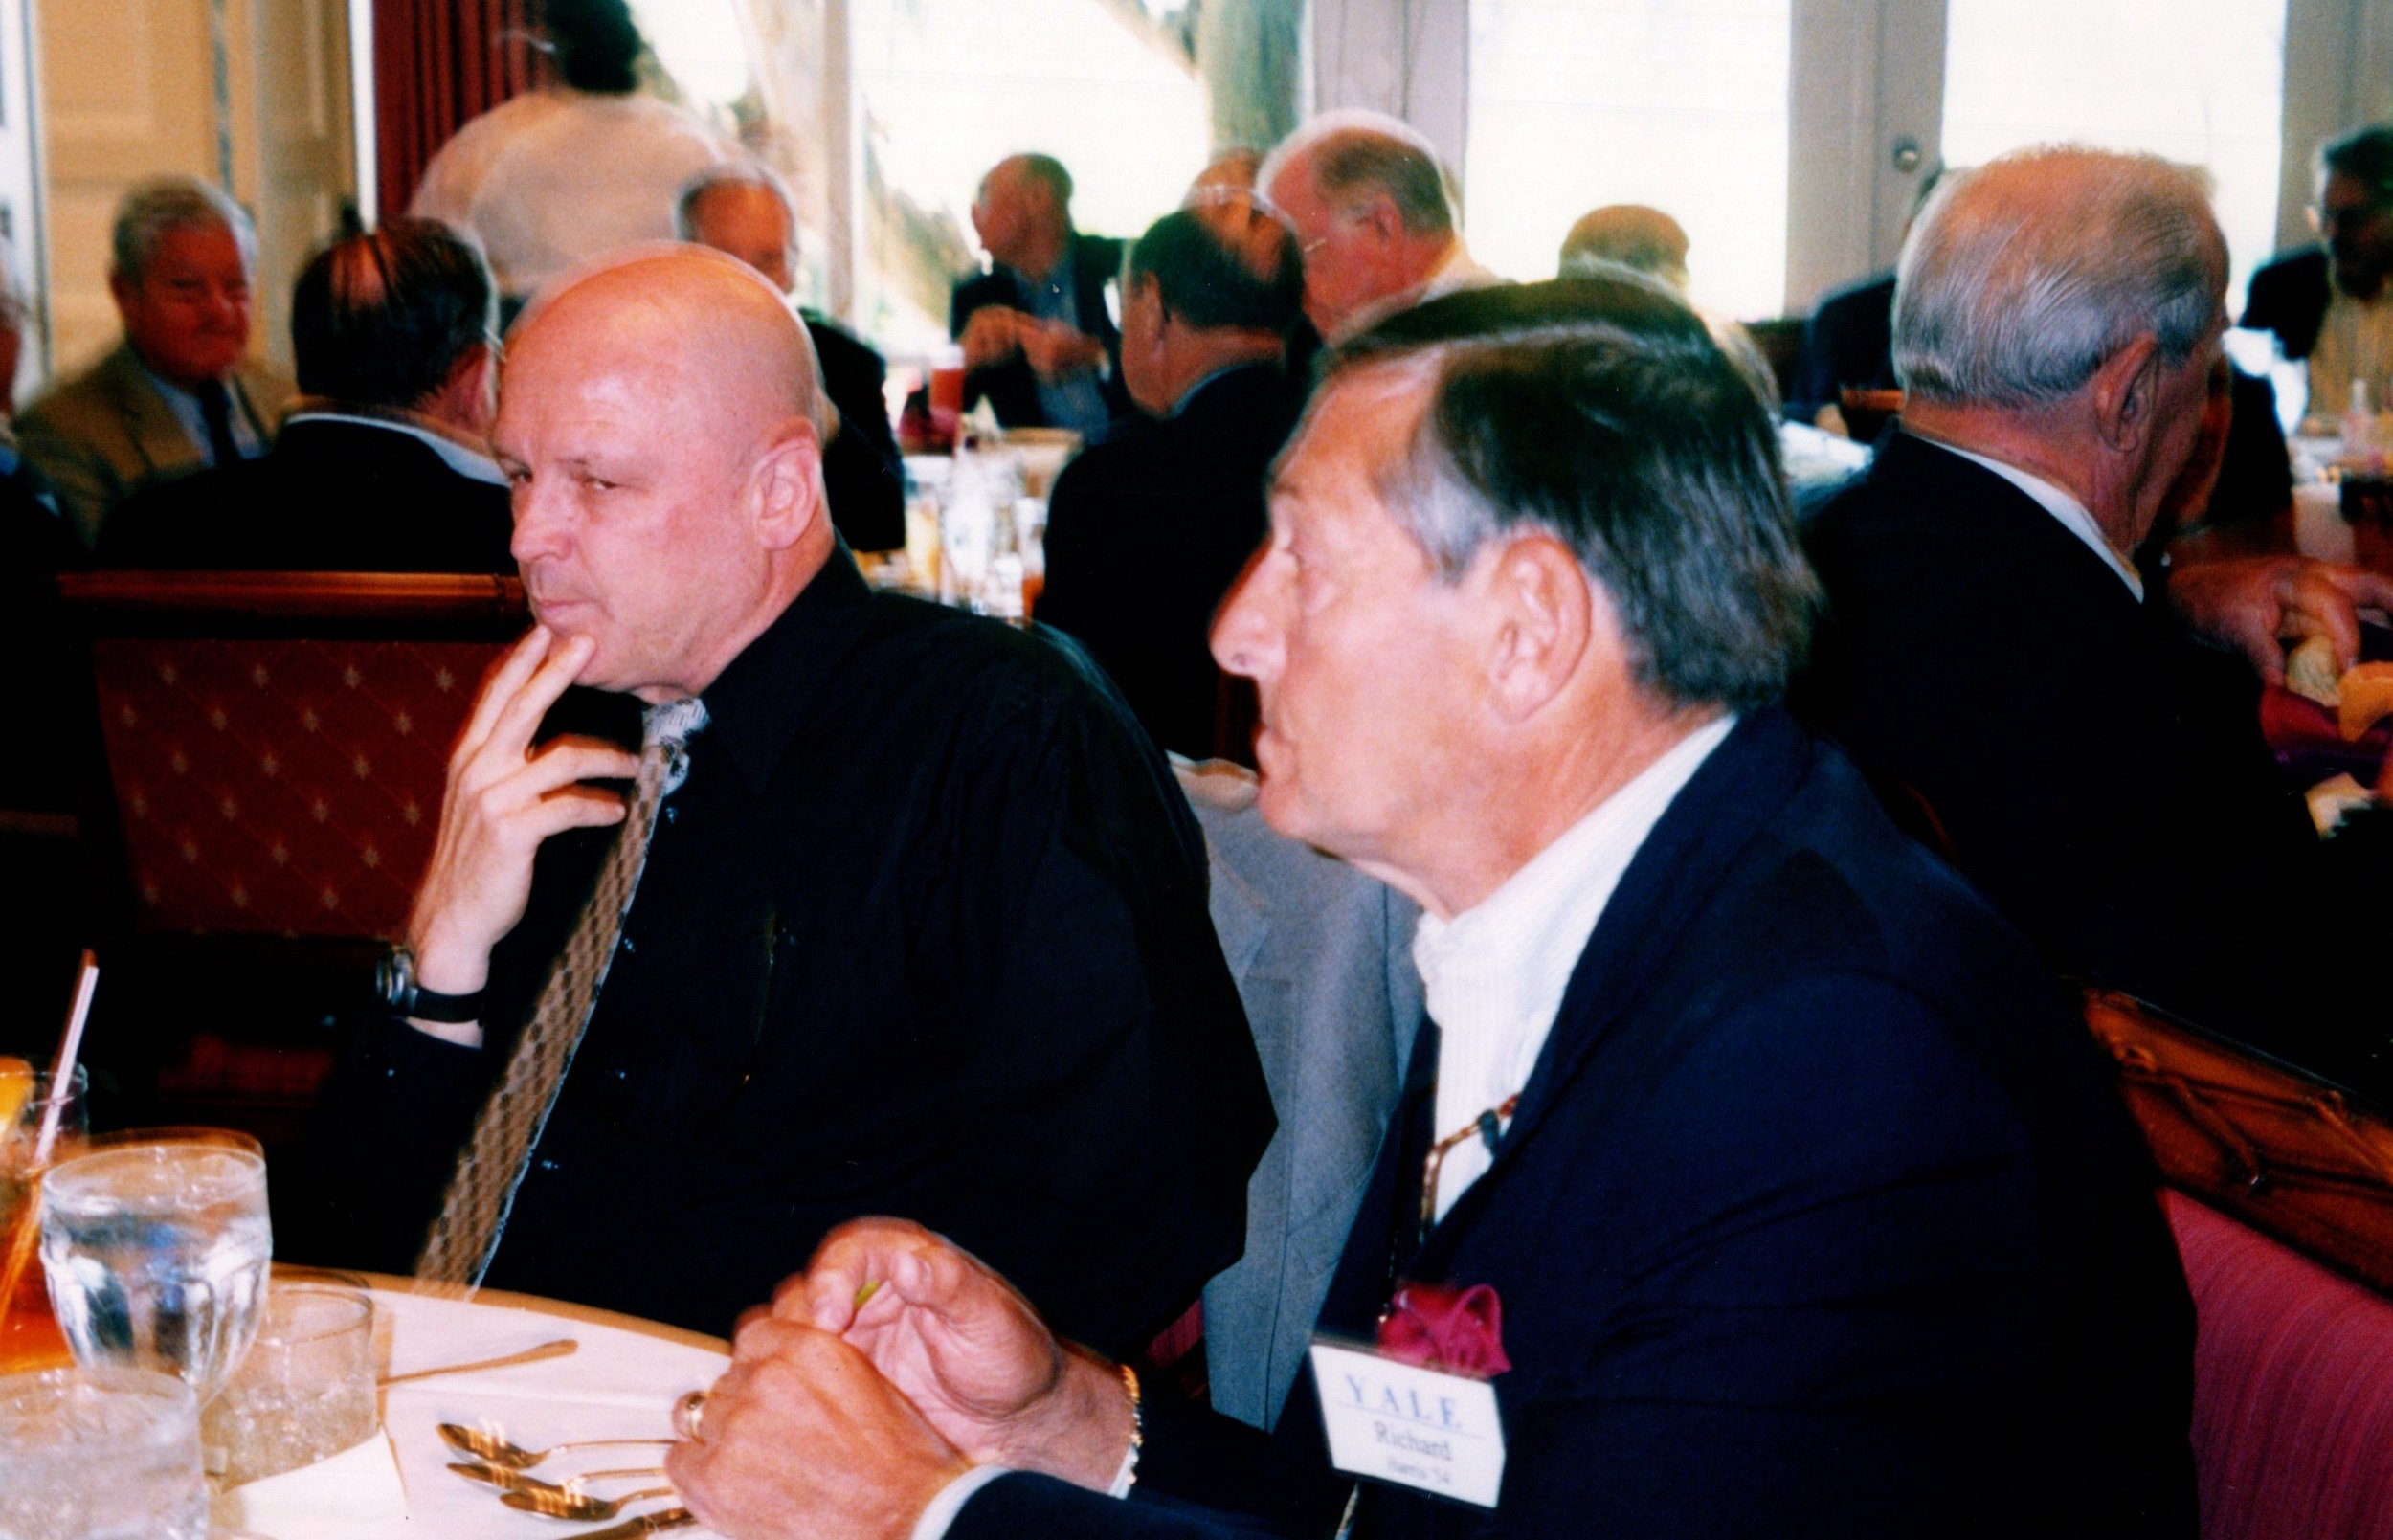 3_11_2004 - COACH SIEDLECKI LUNCHEON - ROYAL POINCIANA C.C. 8.jpg